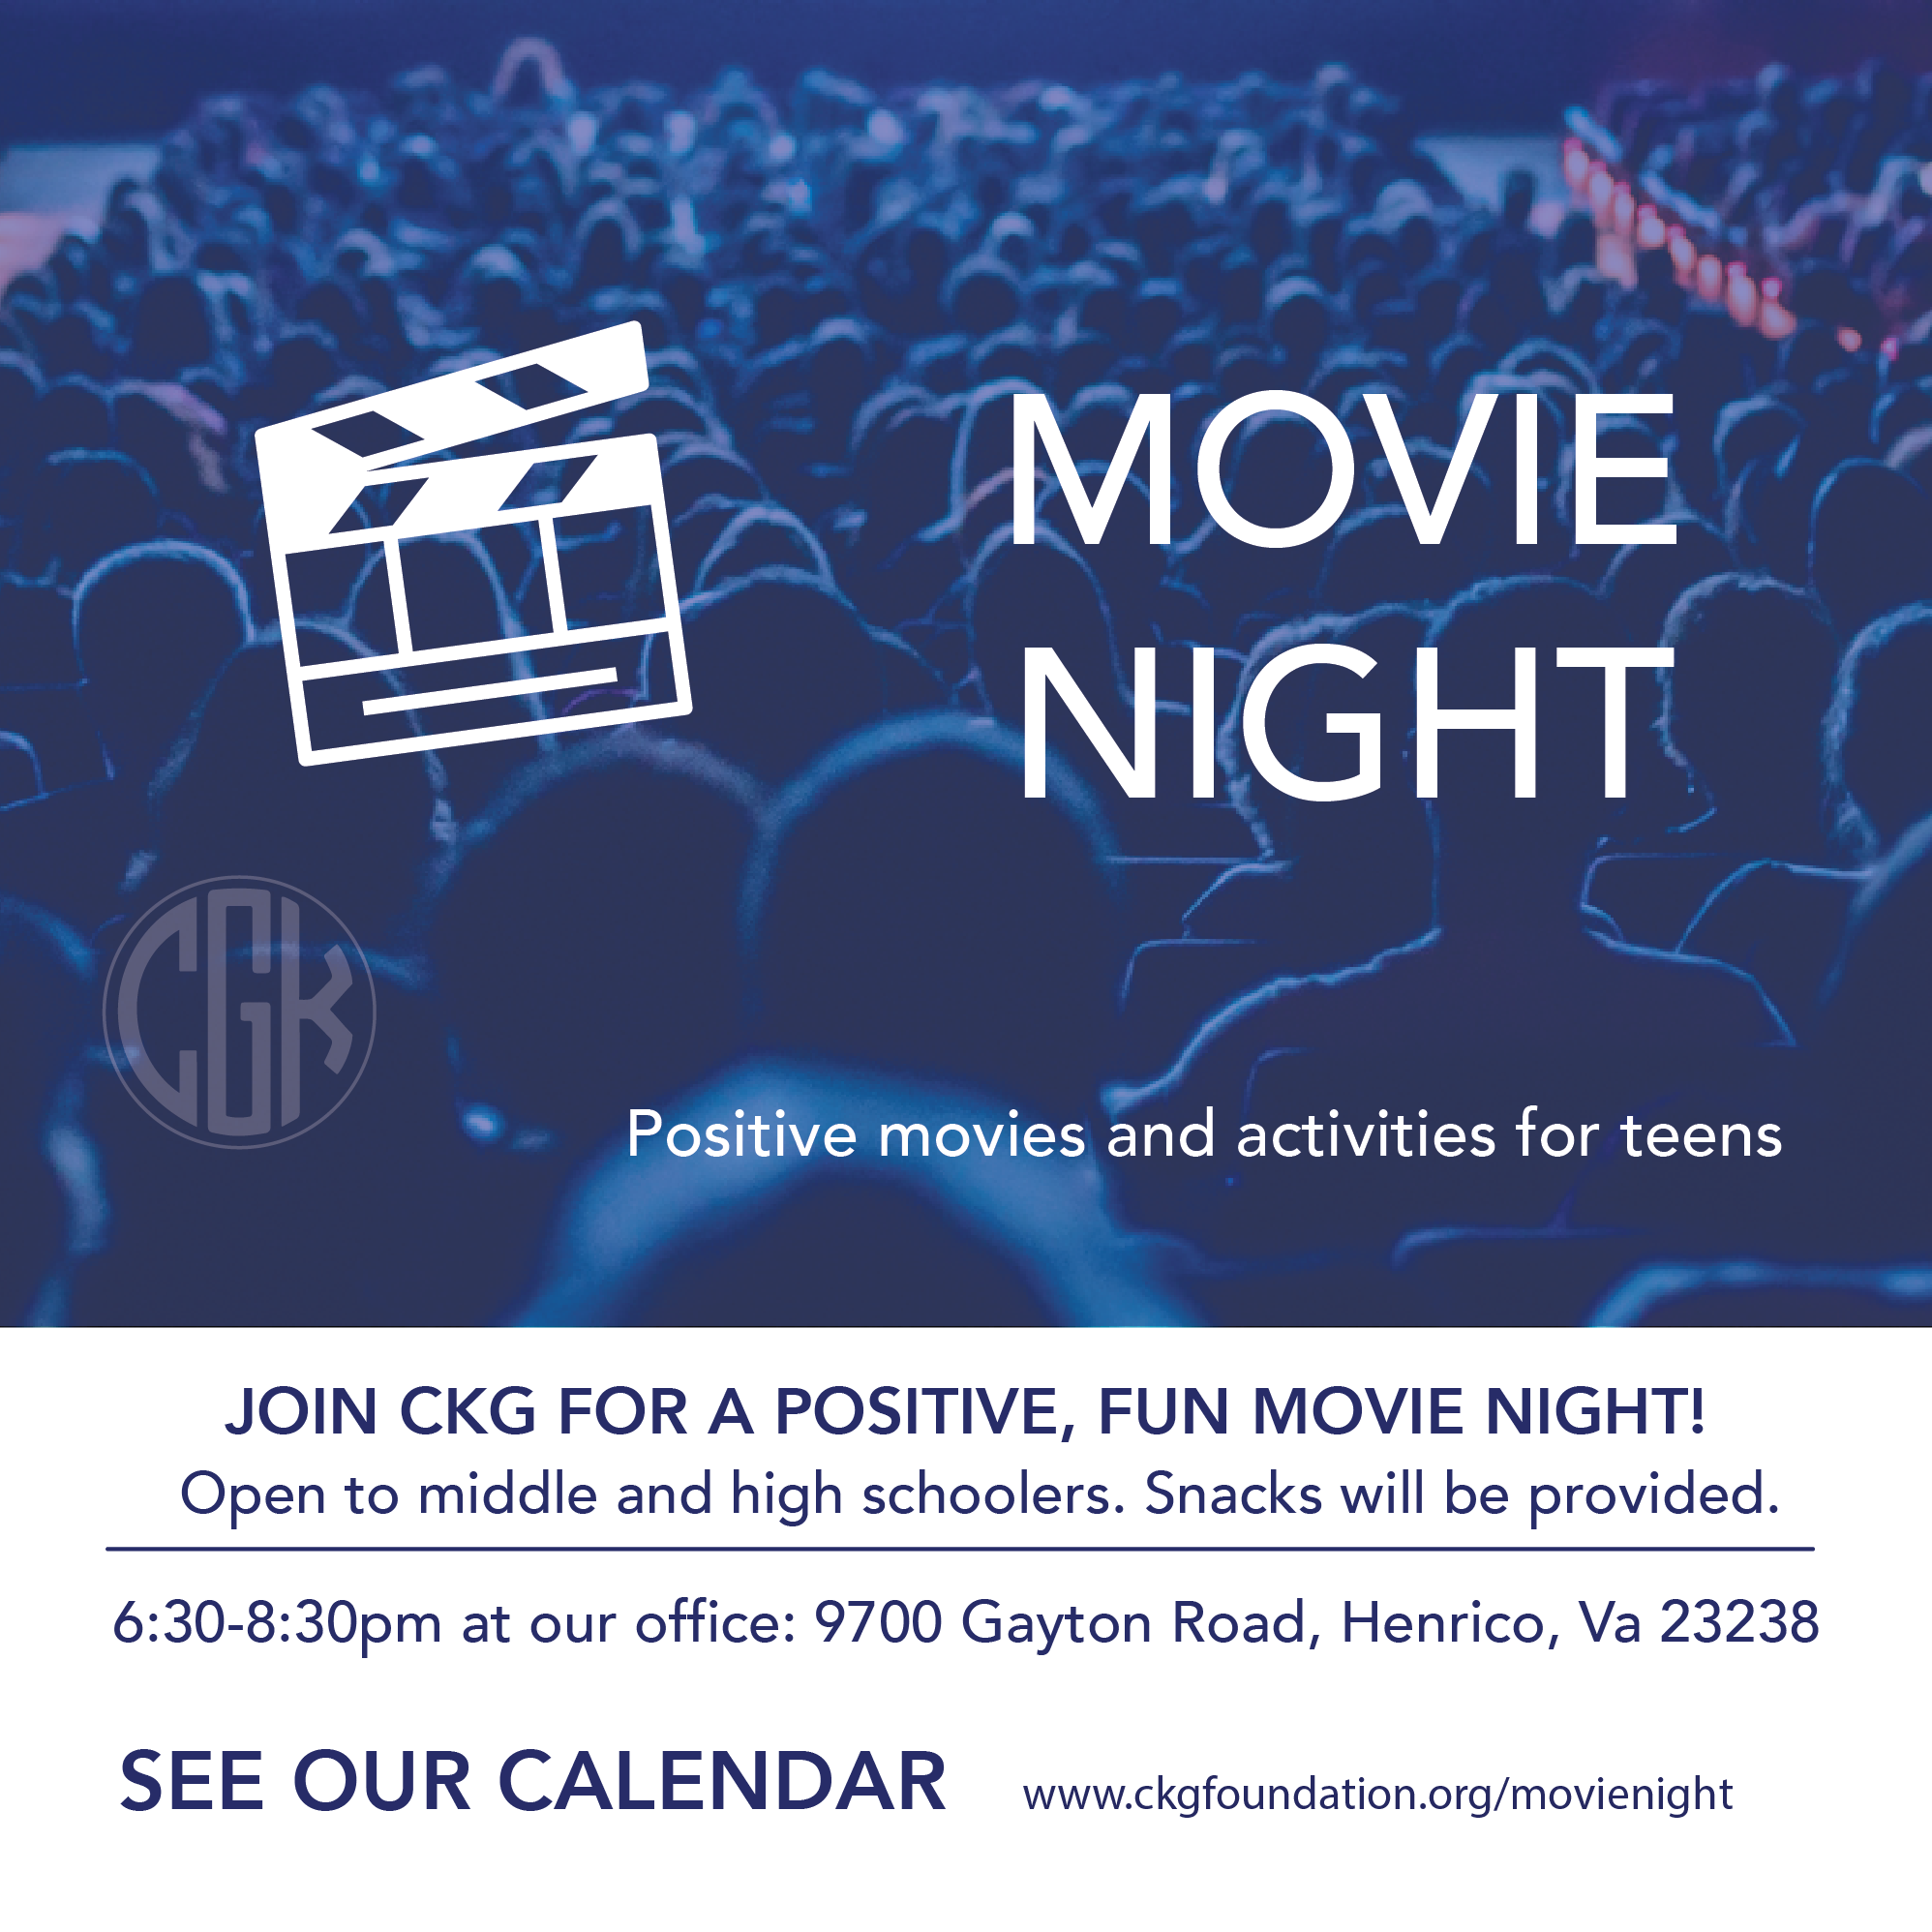 ckg_movienight-03.png